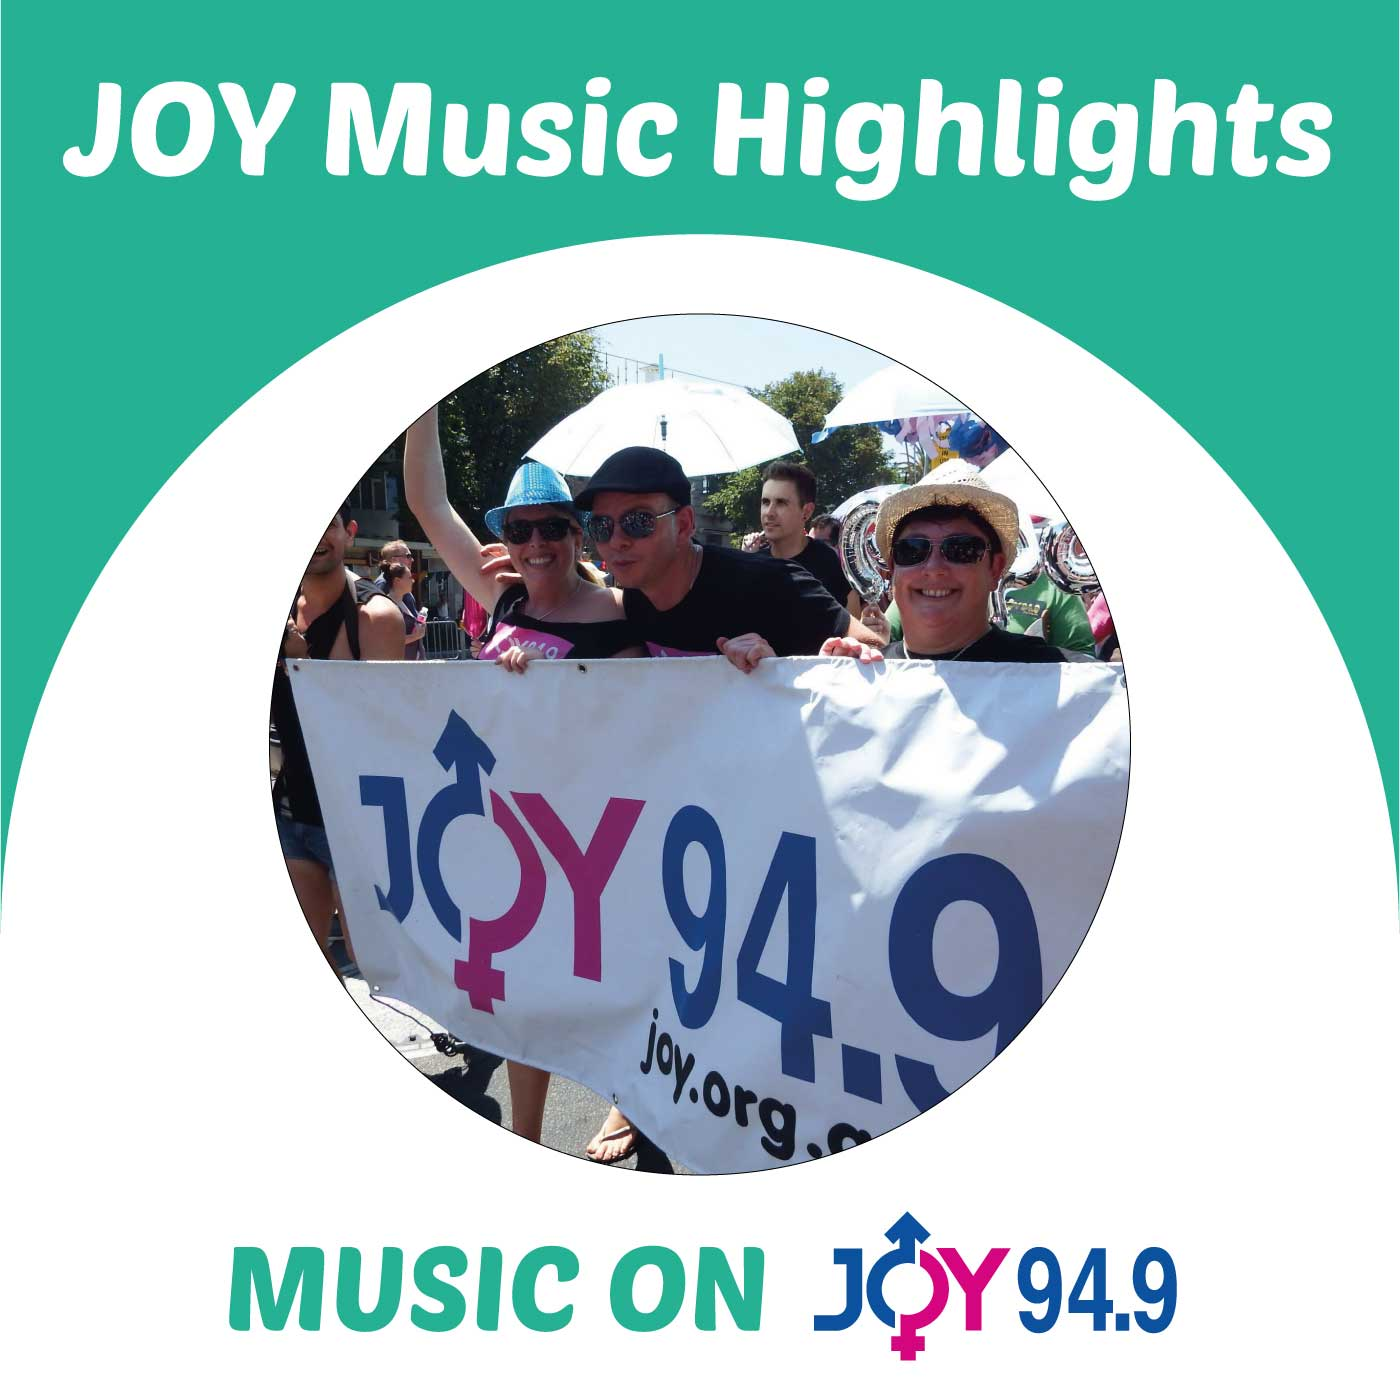 JOY Music Highlights